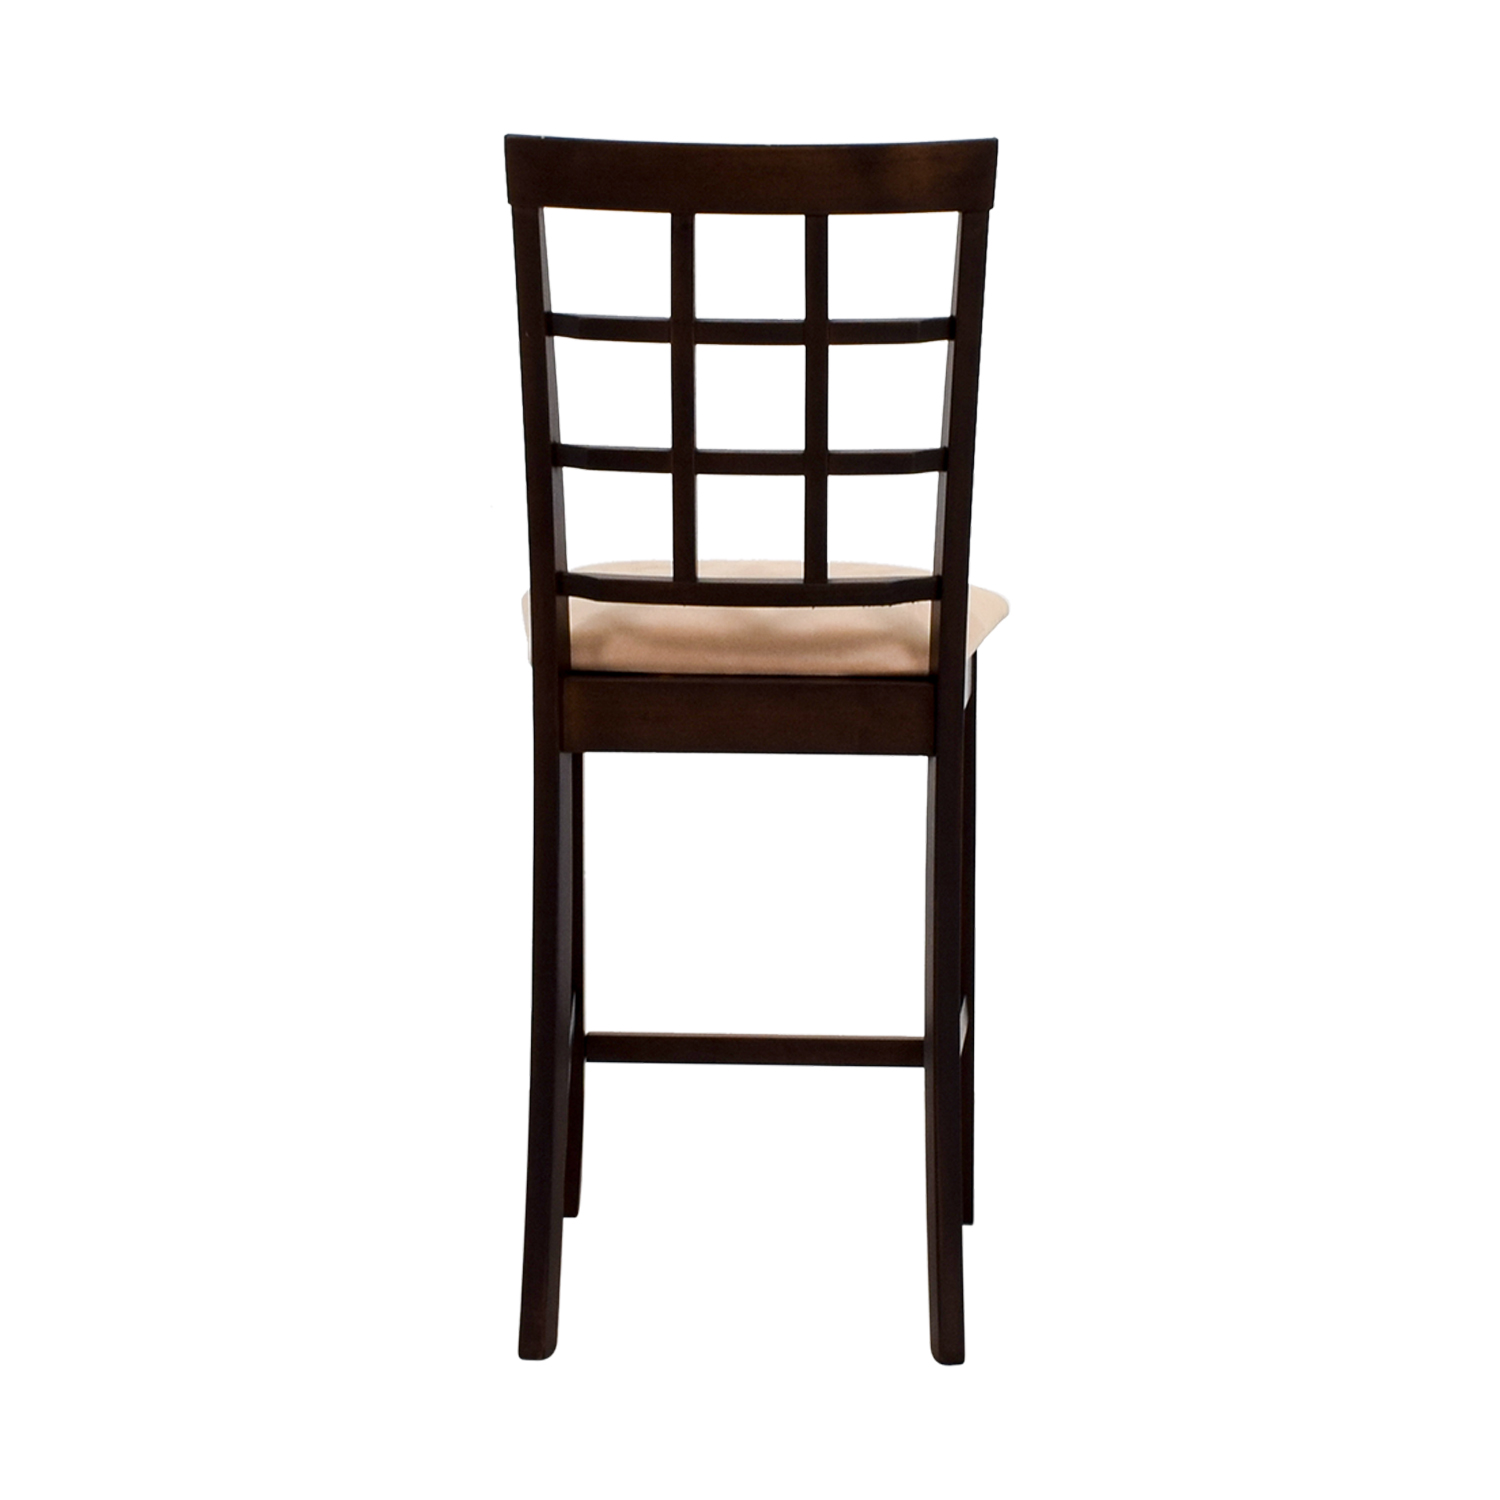 Counter Height Chair in Cappuccino and Tan Padded Seat second hand